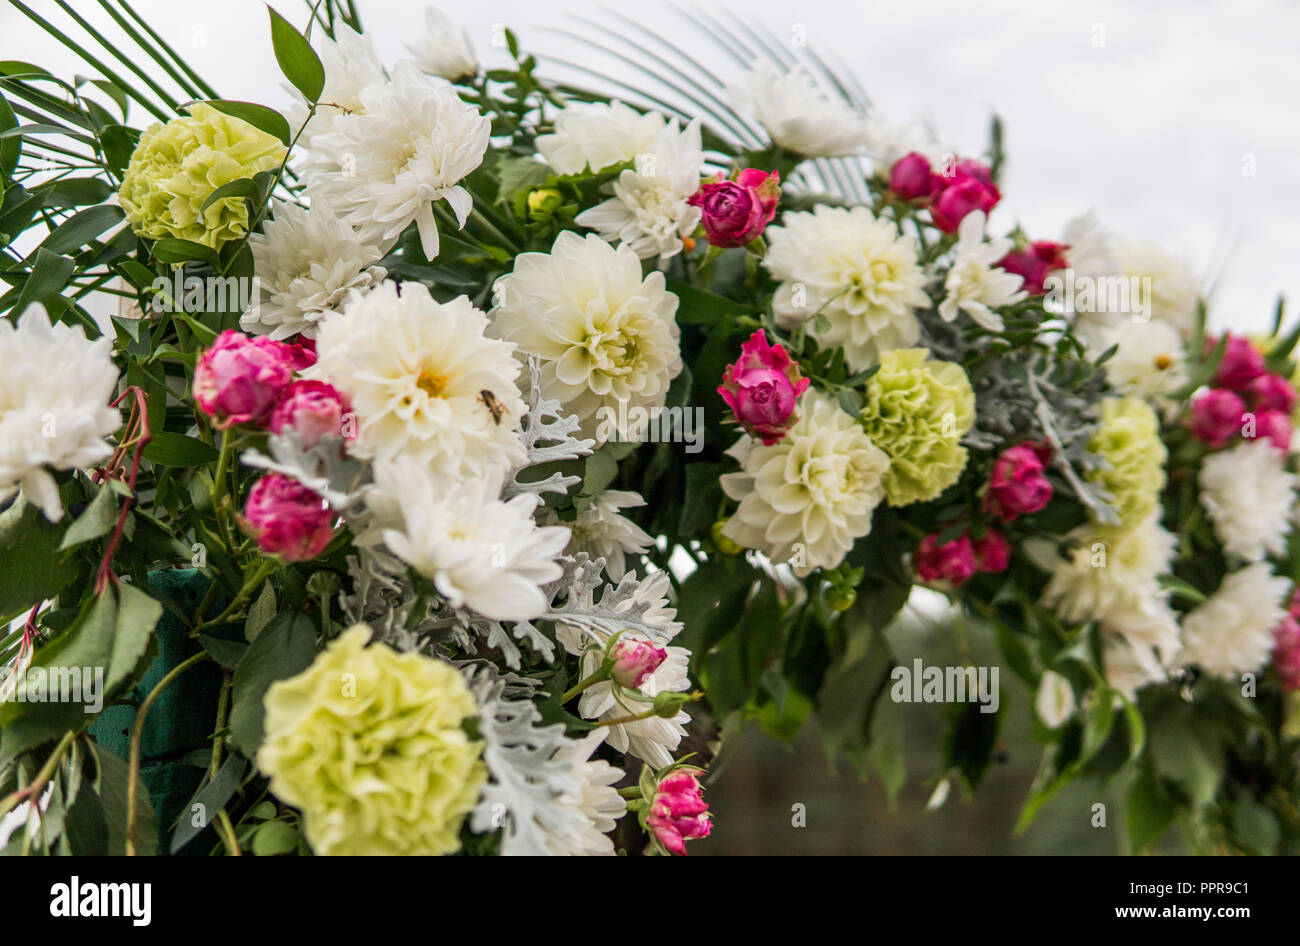 Flower as a decoration on a wedding floral wooden arch with yellow flower as a decoration on a wedding floral wooden arch with yellow cloth and fresh white flowers with green leaves on a rustic wedding ceremony mightylinksfo